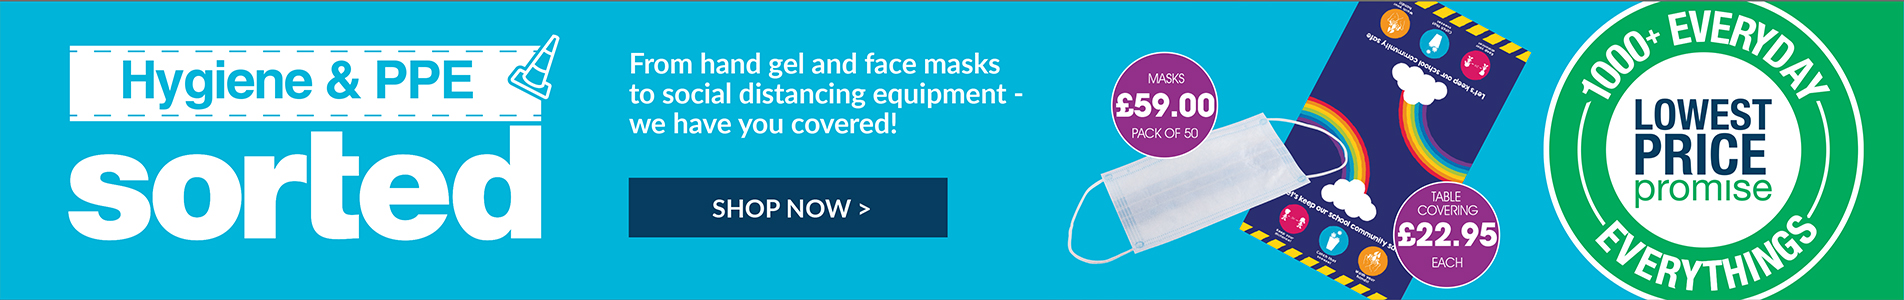 From hand gel and face masks to social distancing equipment - we have you covered to get back to school safely!